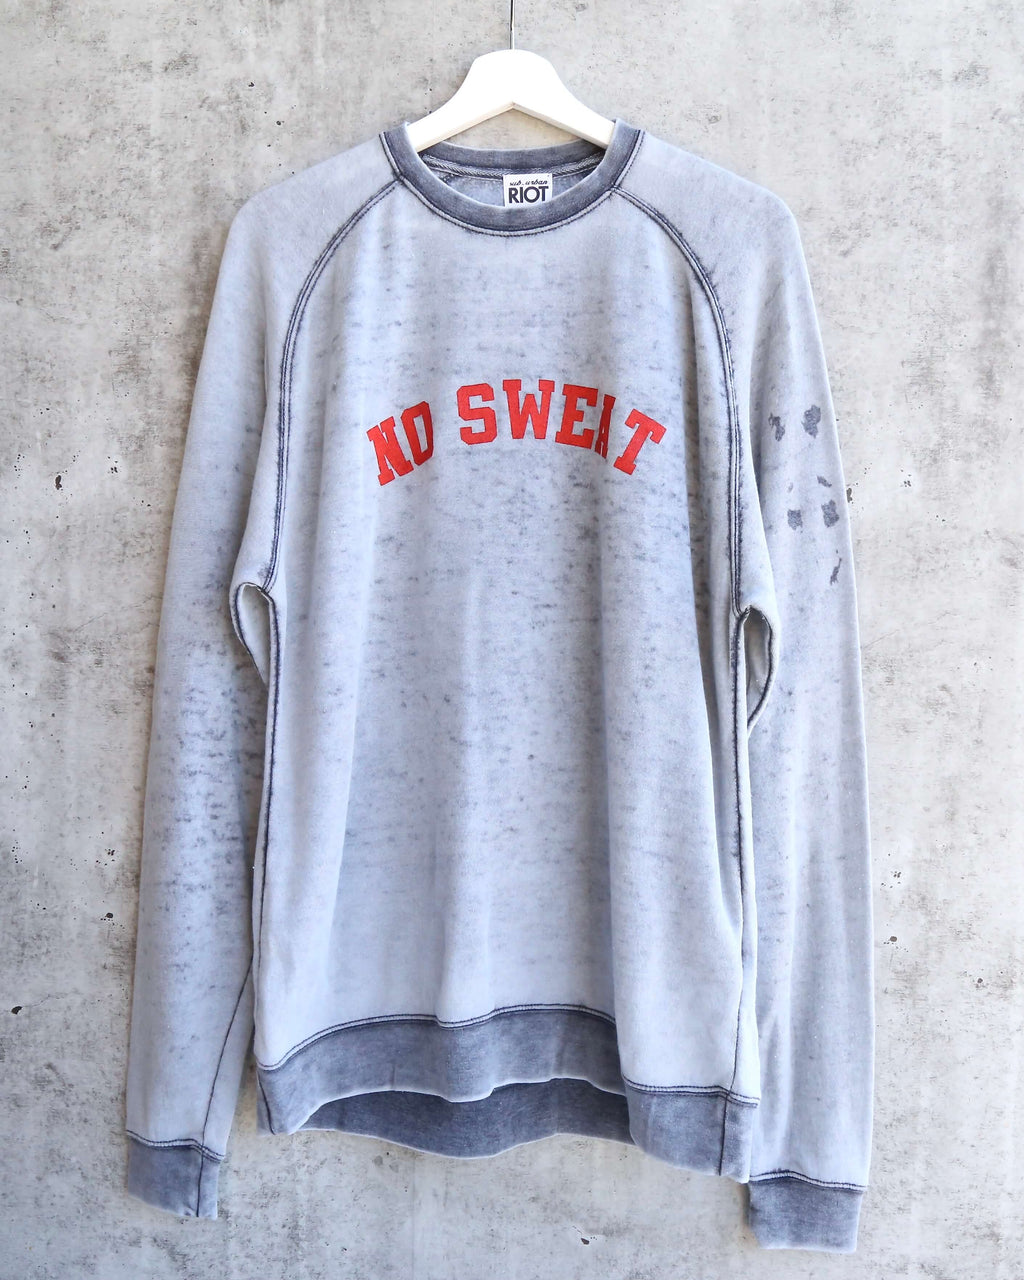 suburban riot - no sweat burnout wash unisex sweatshirt - slate grey